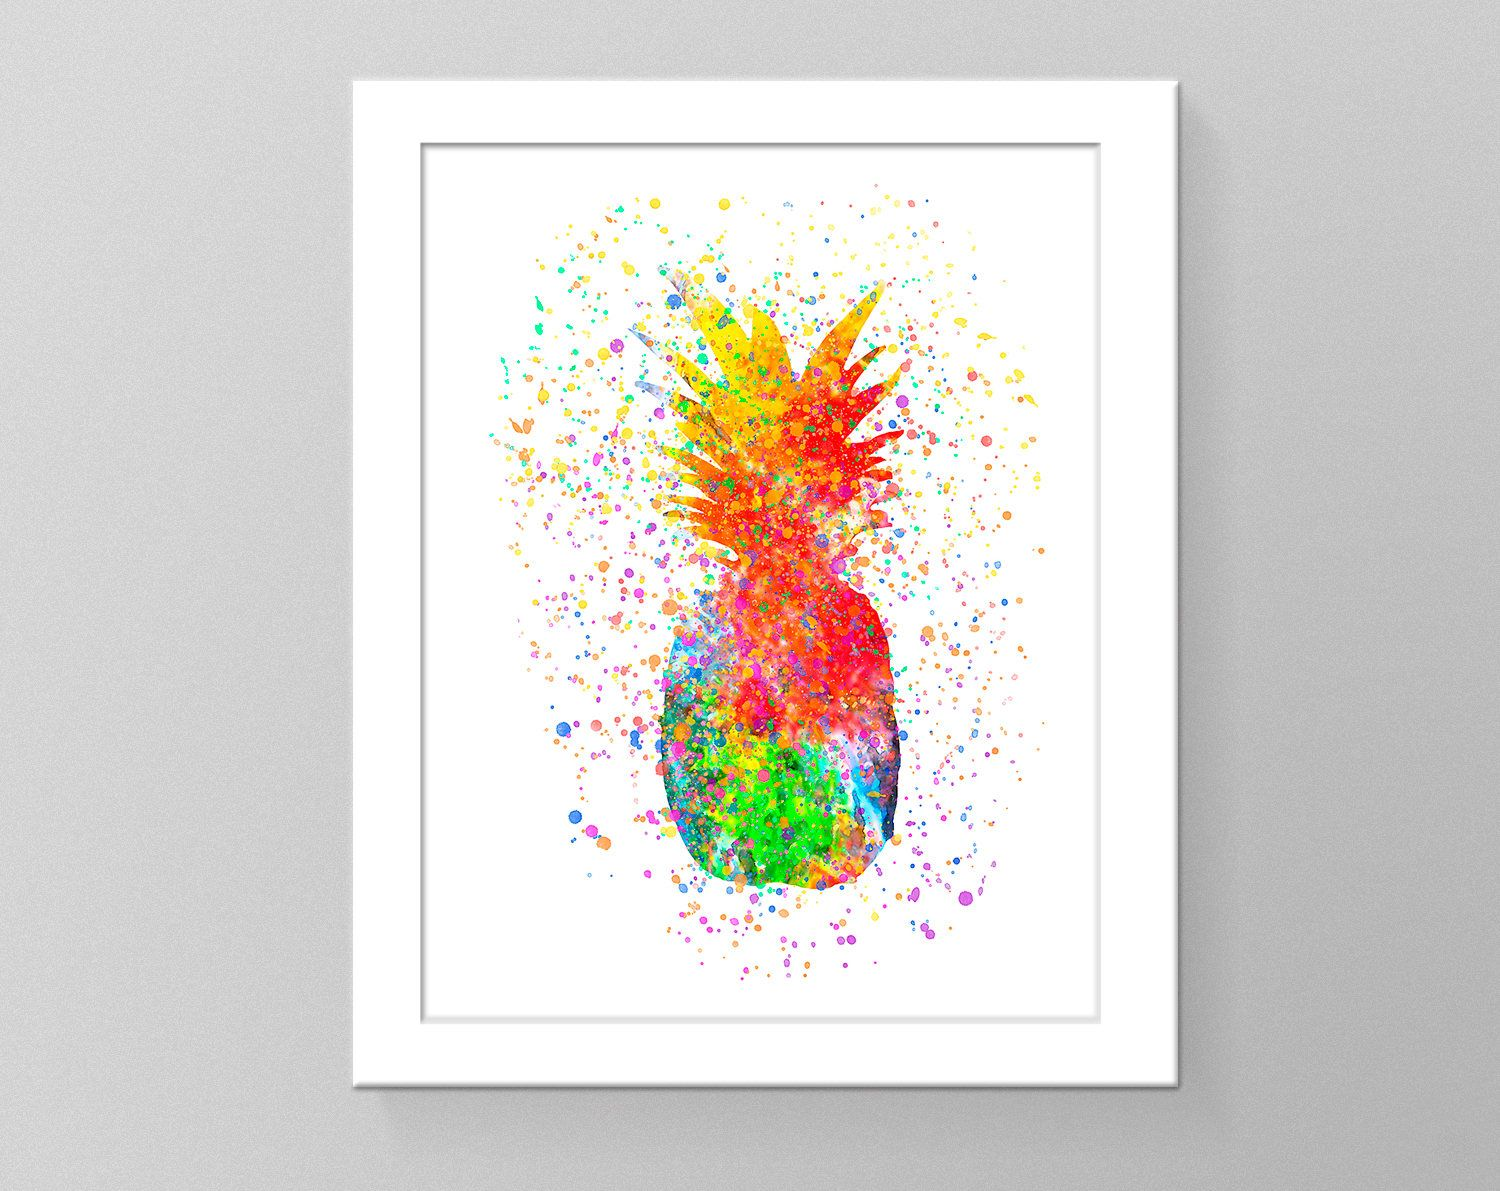 Watercolor Pineapple Printable Poster Modern Wall Art Tribal Wall Decor Kitchen Wall Decor Colorful Pinea Watercolor Pineapple Modern Wall Art Tropical Art